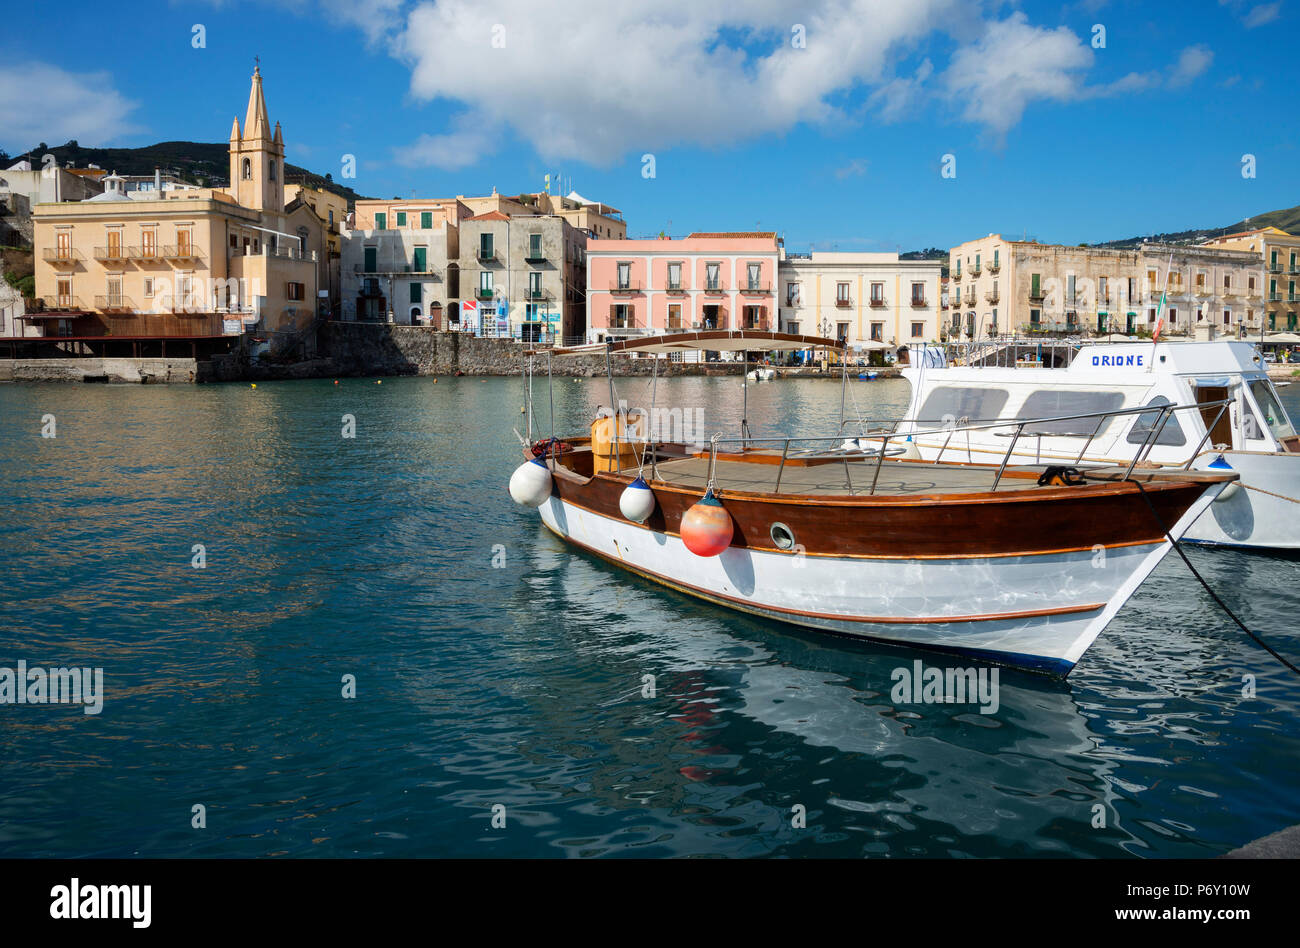 Marina Corta harbor and San Giuseppe church, Lipari Island, Aeolian Islands, UNESCO World Heritage Site, Sicily, Italy, Mediterranean, Europe - Stock Image